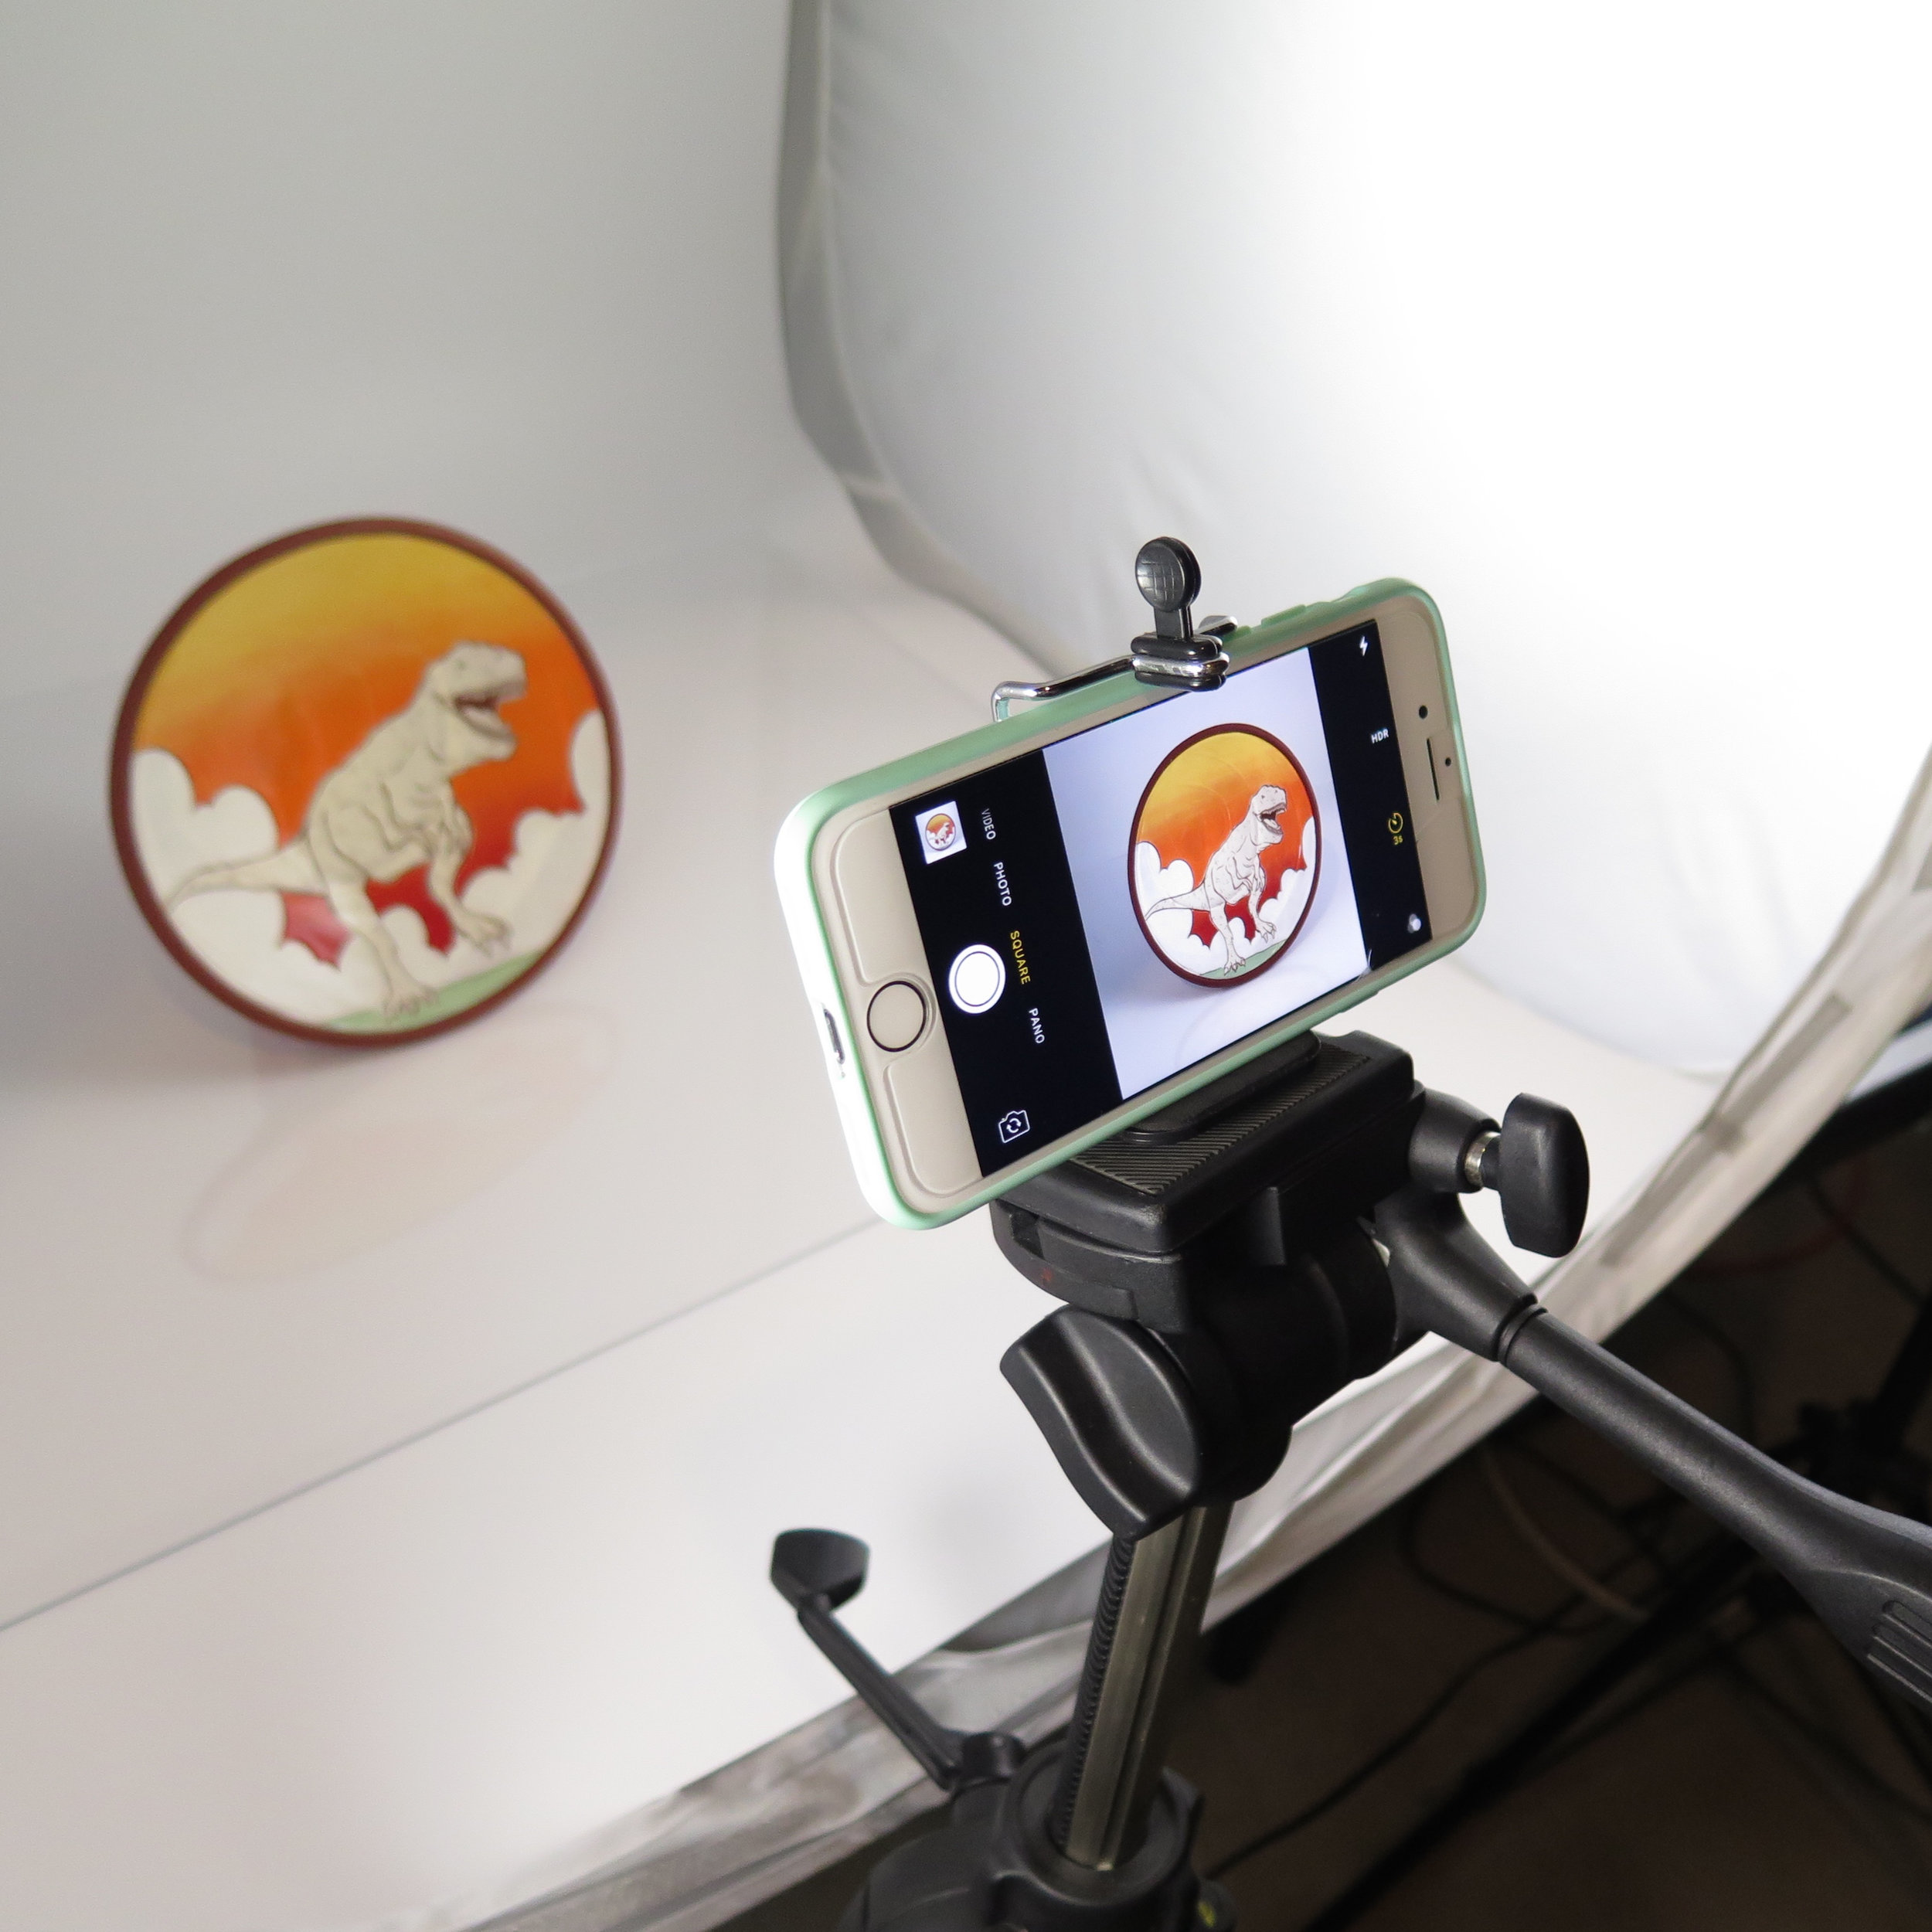 This phone holder connects to any tripod and cost $2 on amazon!